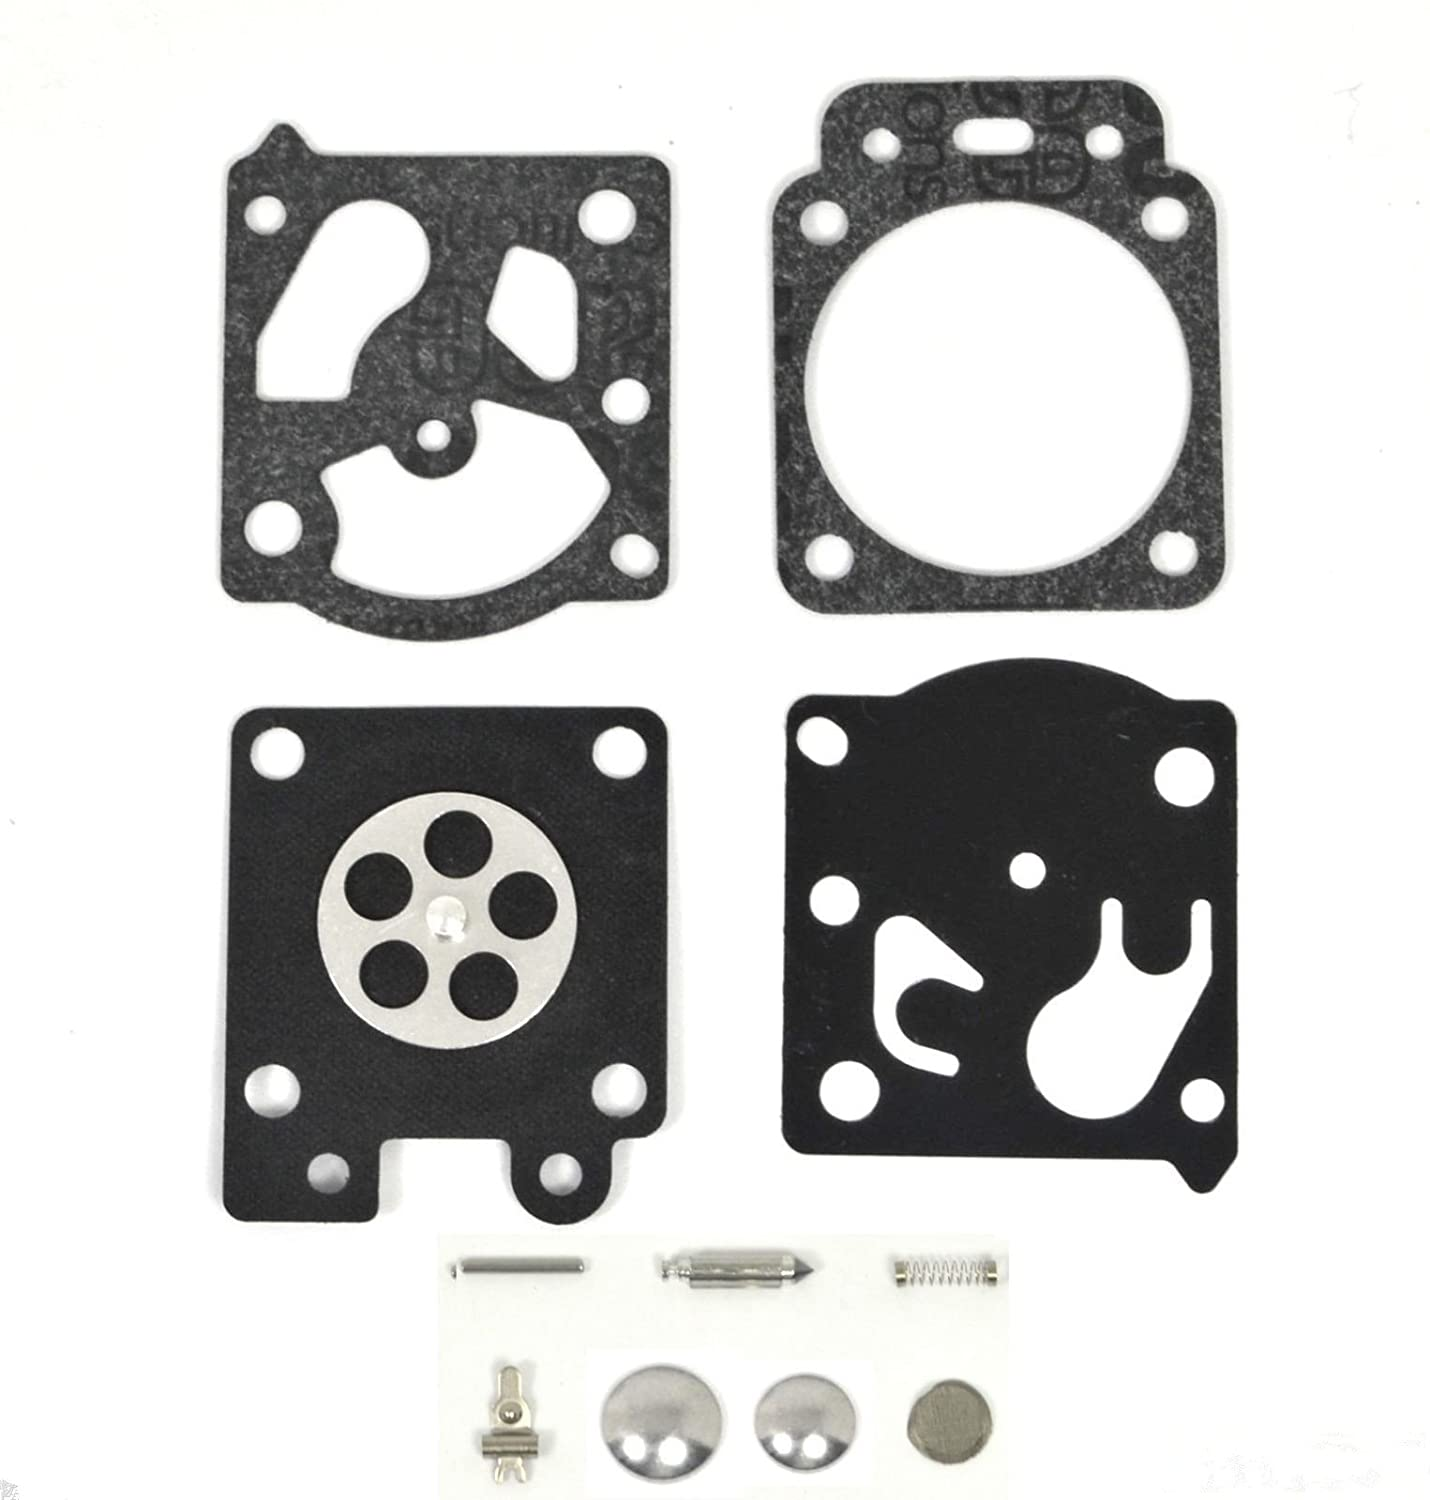 Anfu Carburetor Repair Kit for Poulan Pro Craftsman Blower 545081855 WT-875-A An liang Industry co. ltd